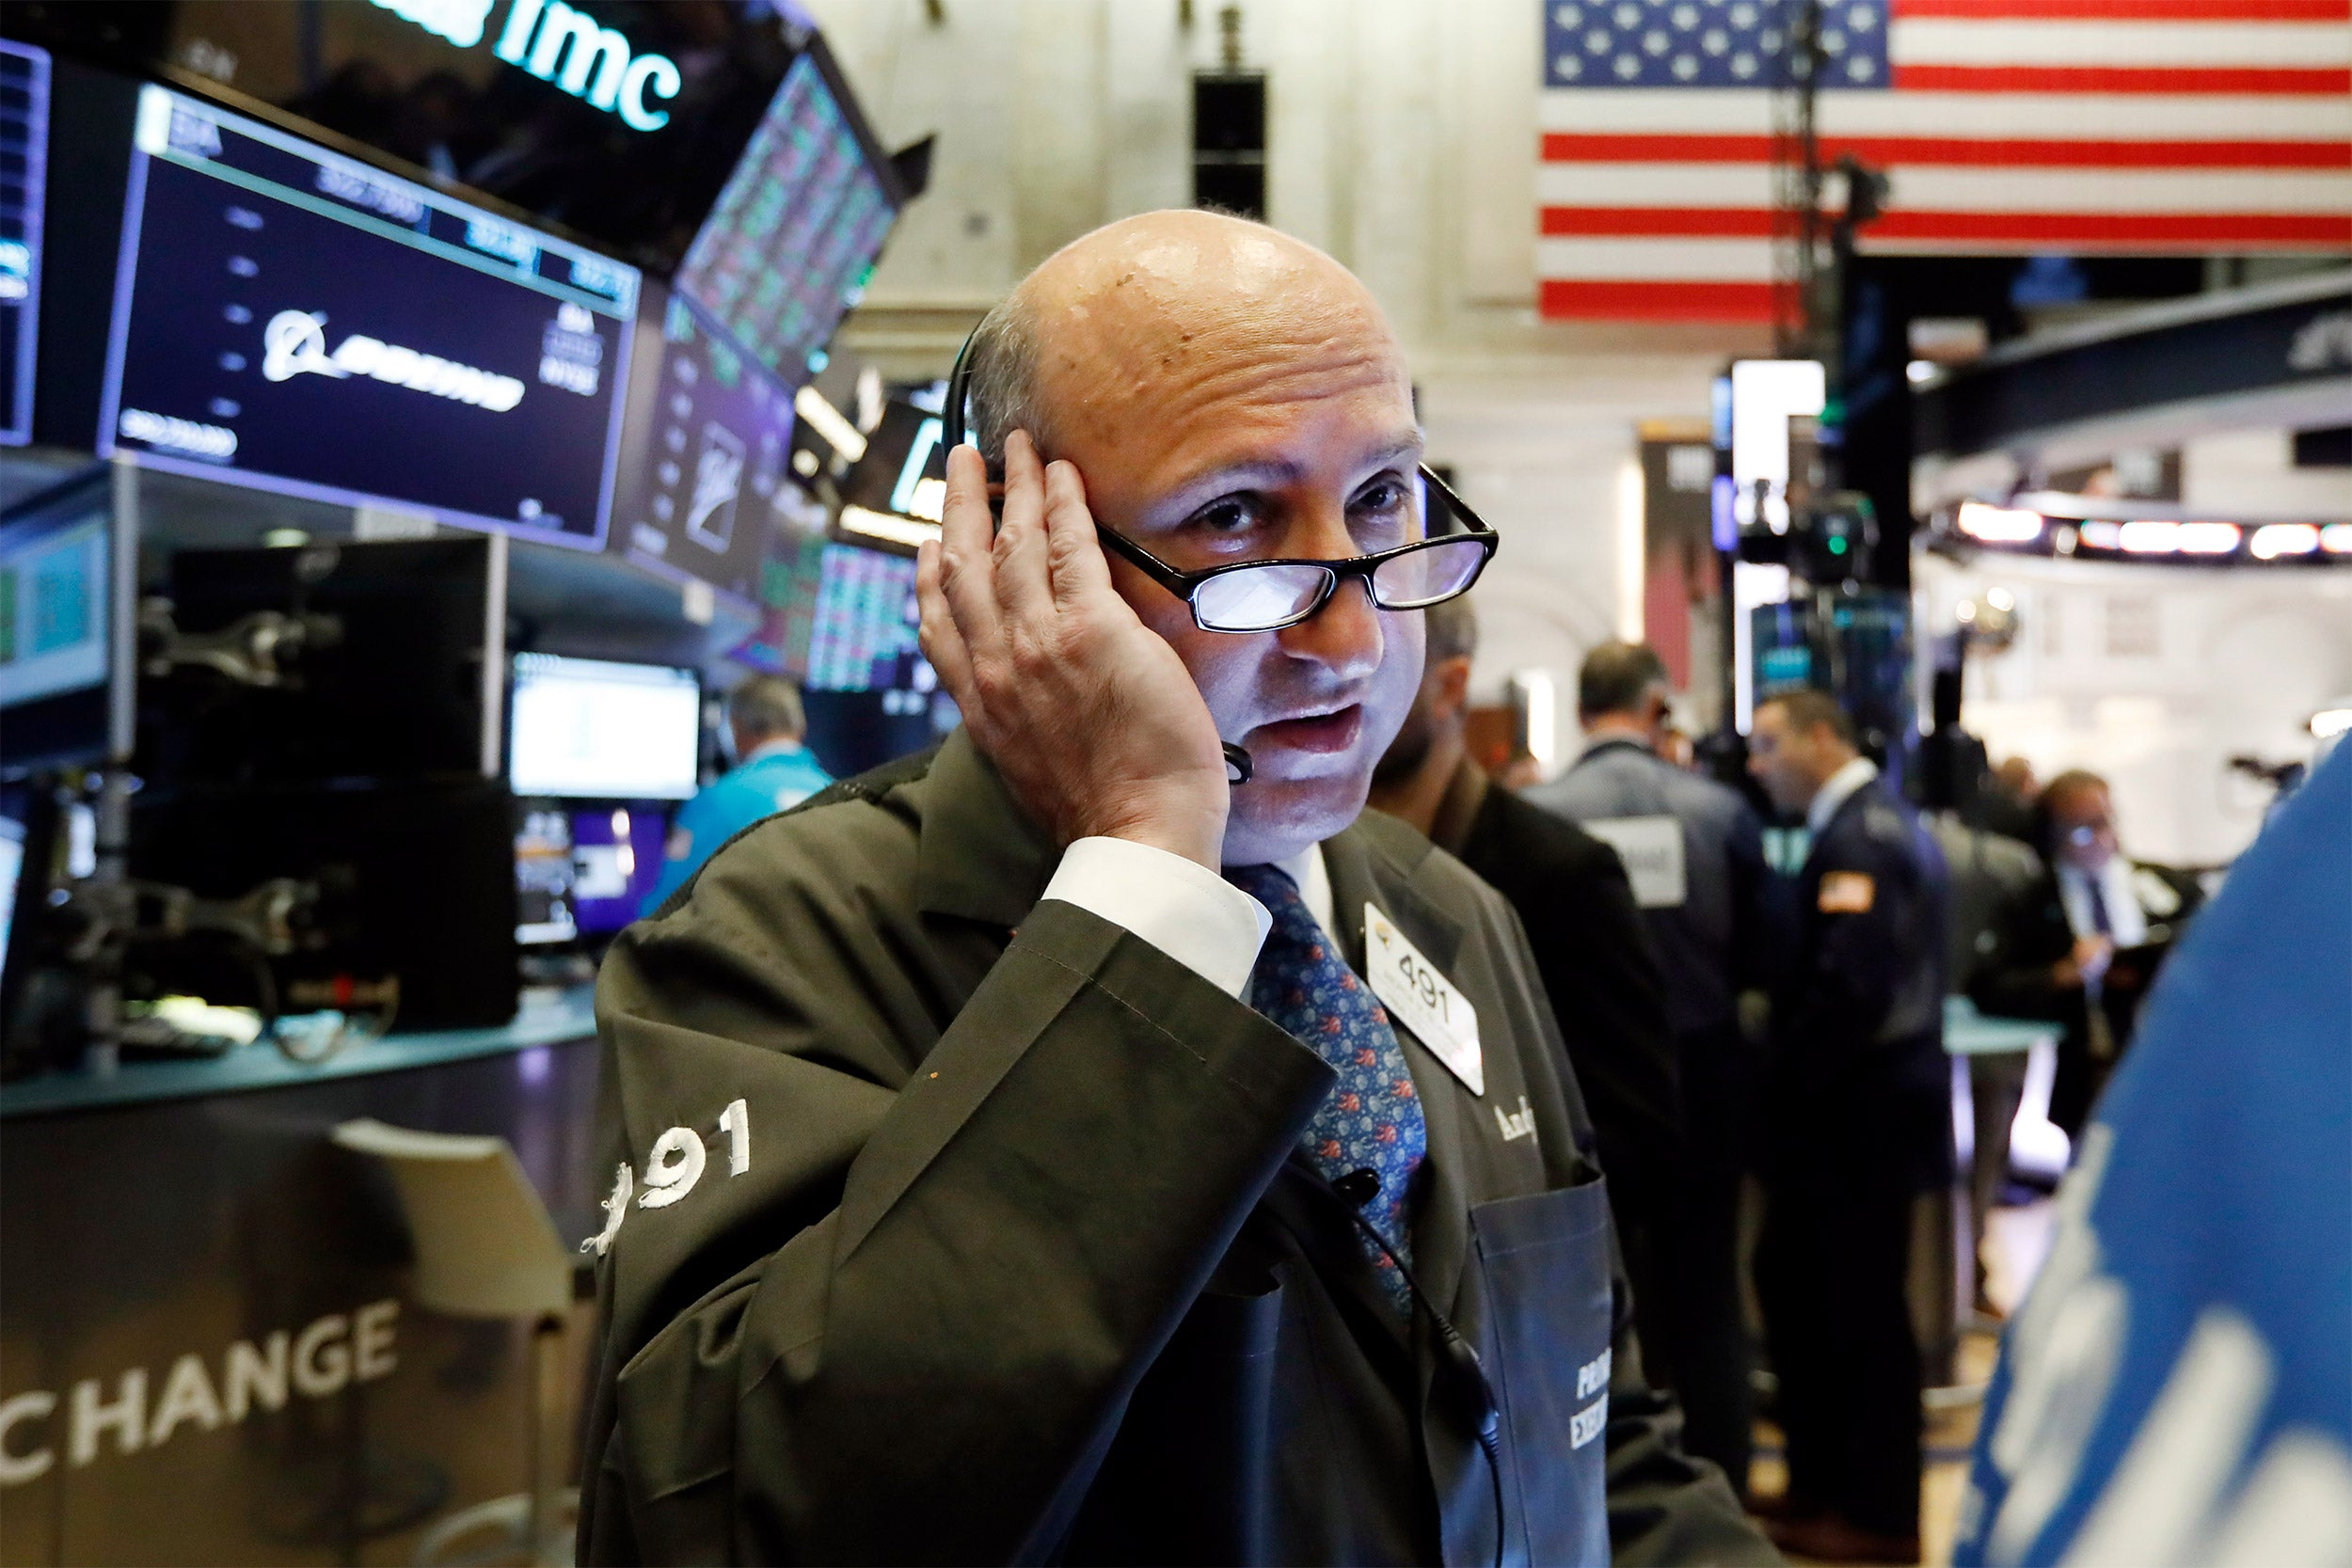 New York Stock Exchange trader on the floor.